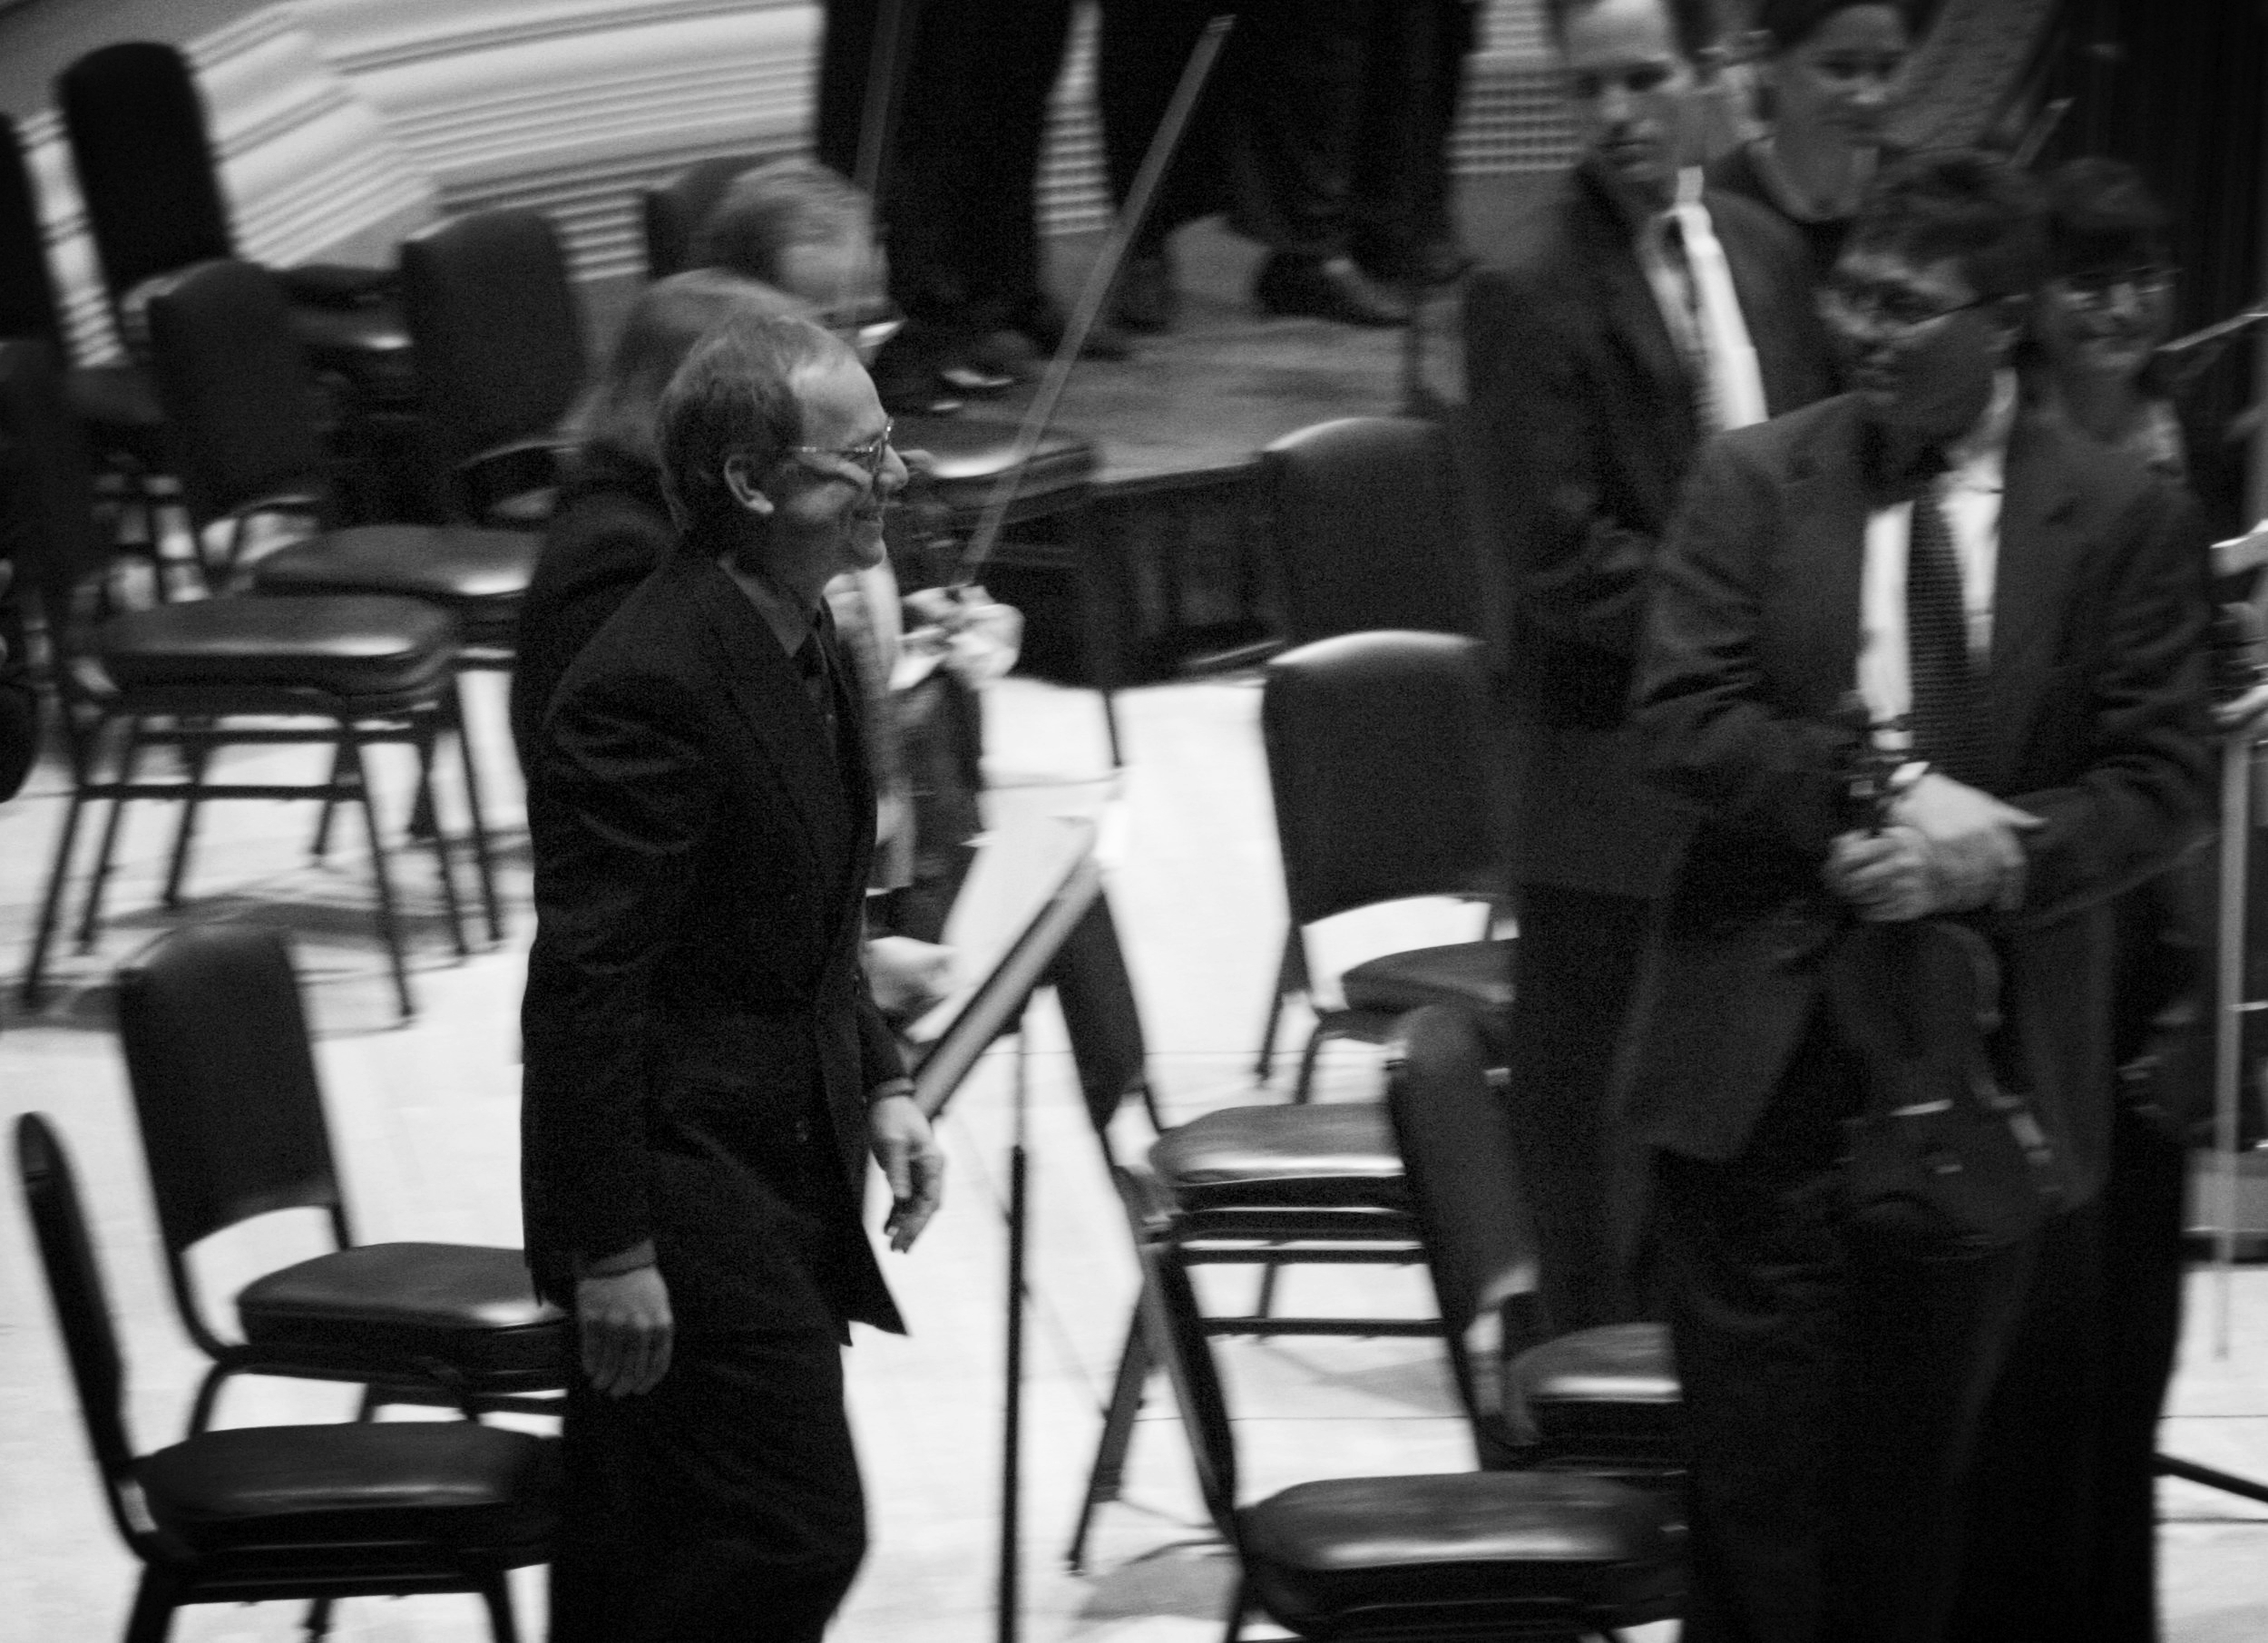 Danny Elfman taking a bow at Carnegie Hall (2005)